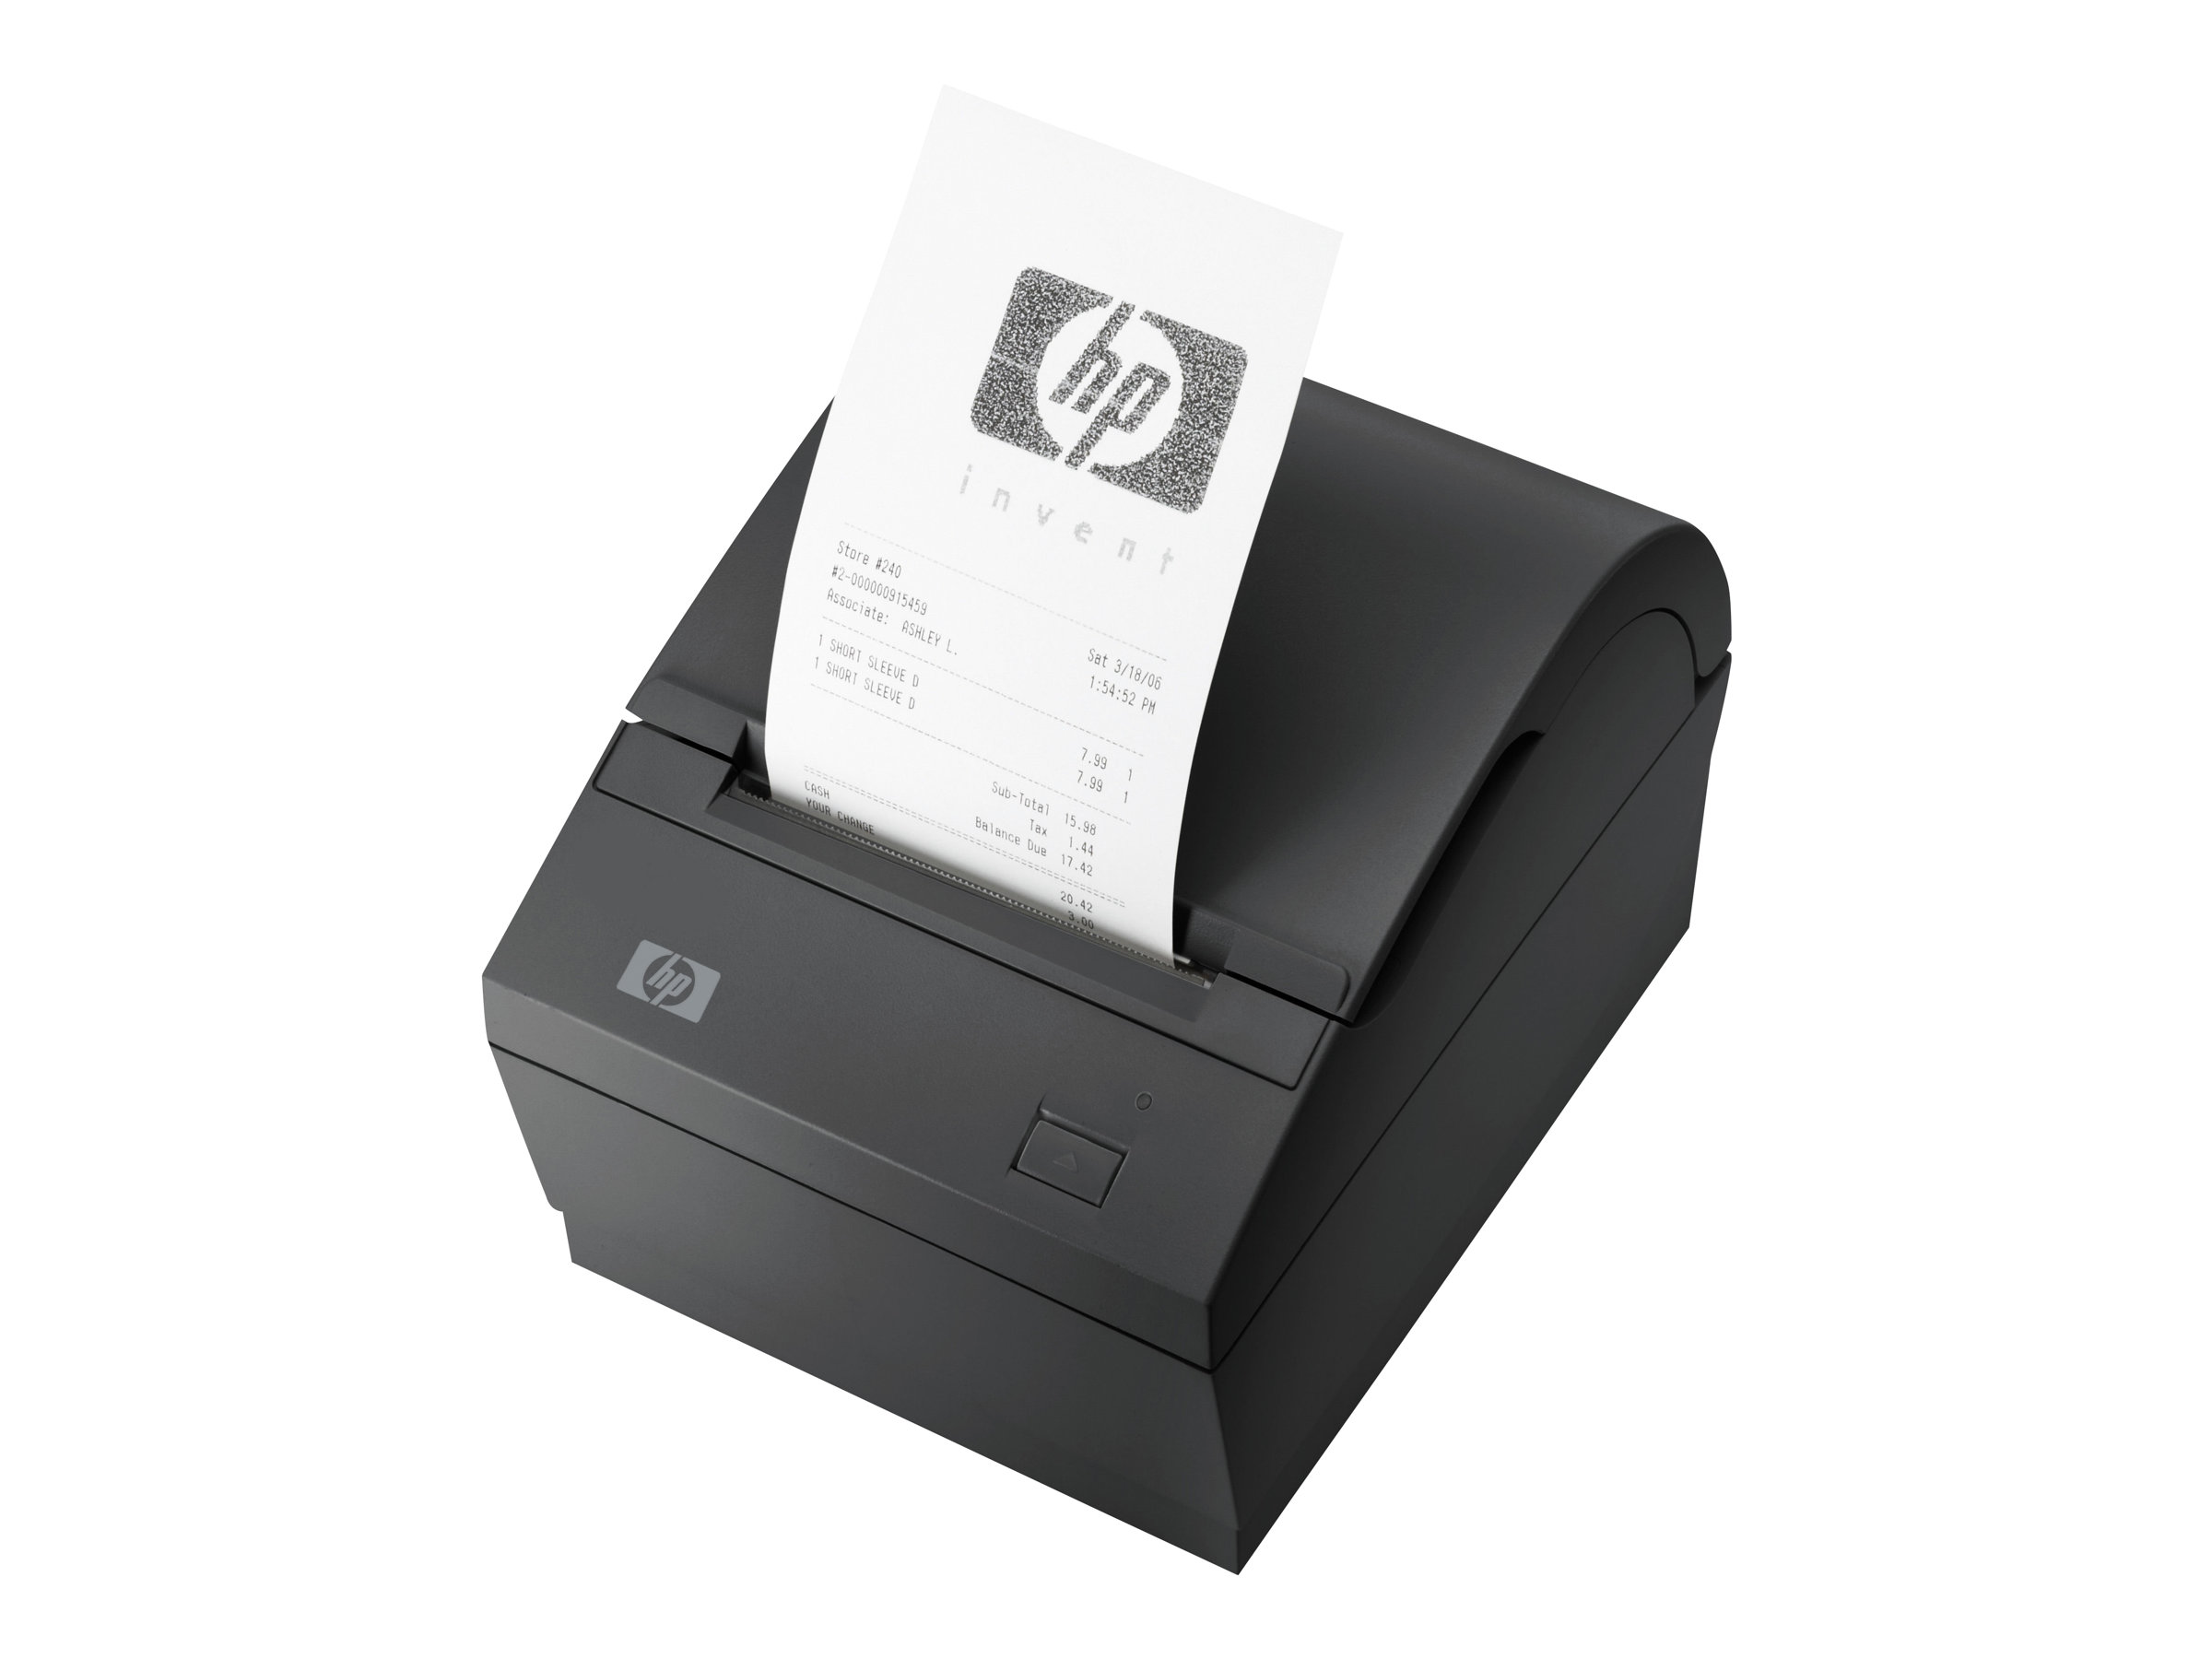 HP Dual Serial USB Thermal Receipt Printer - Belegdrucker